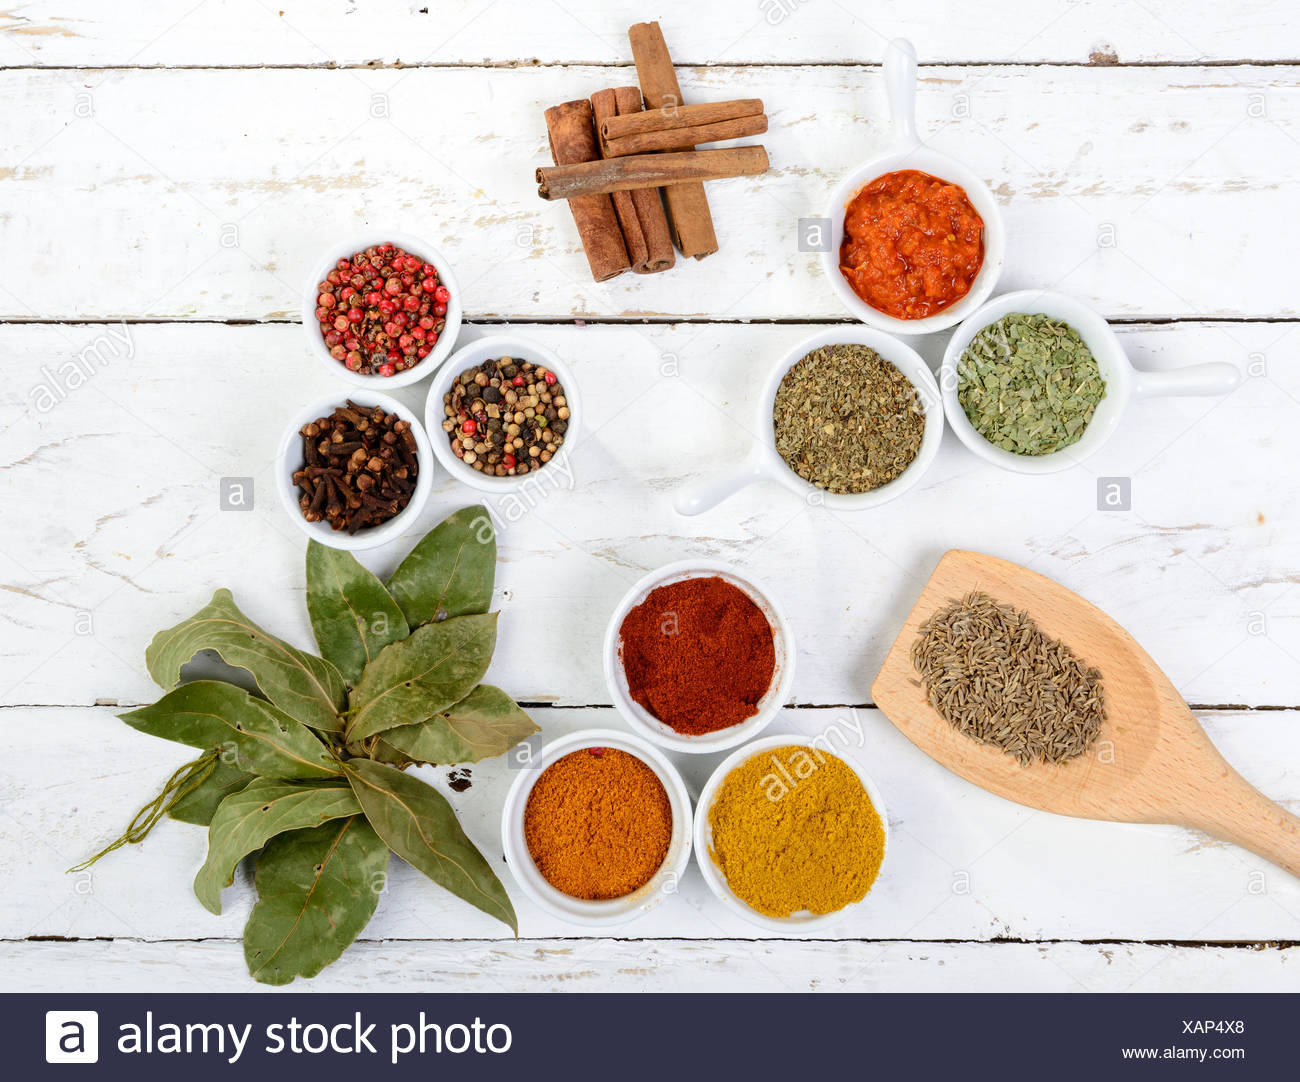 glass chalice tumbler cup food aliment pepper spice isolated ground soil earth humus kitchen cuisine boil cooks boiling cooking - Stock Image